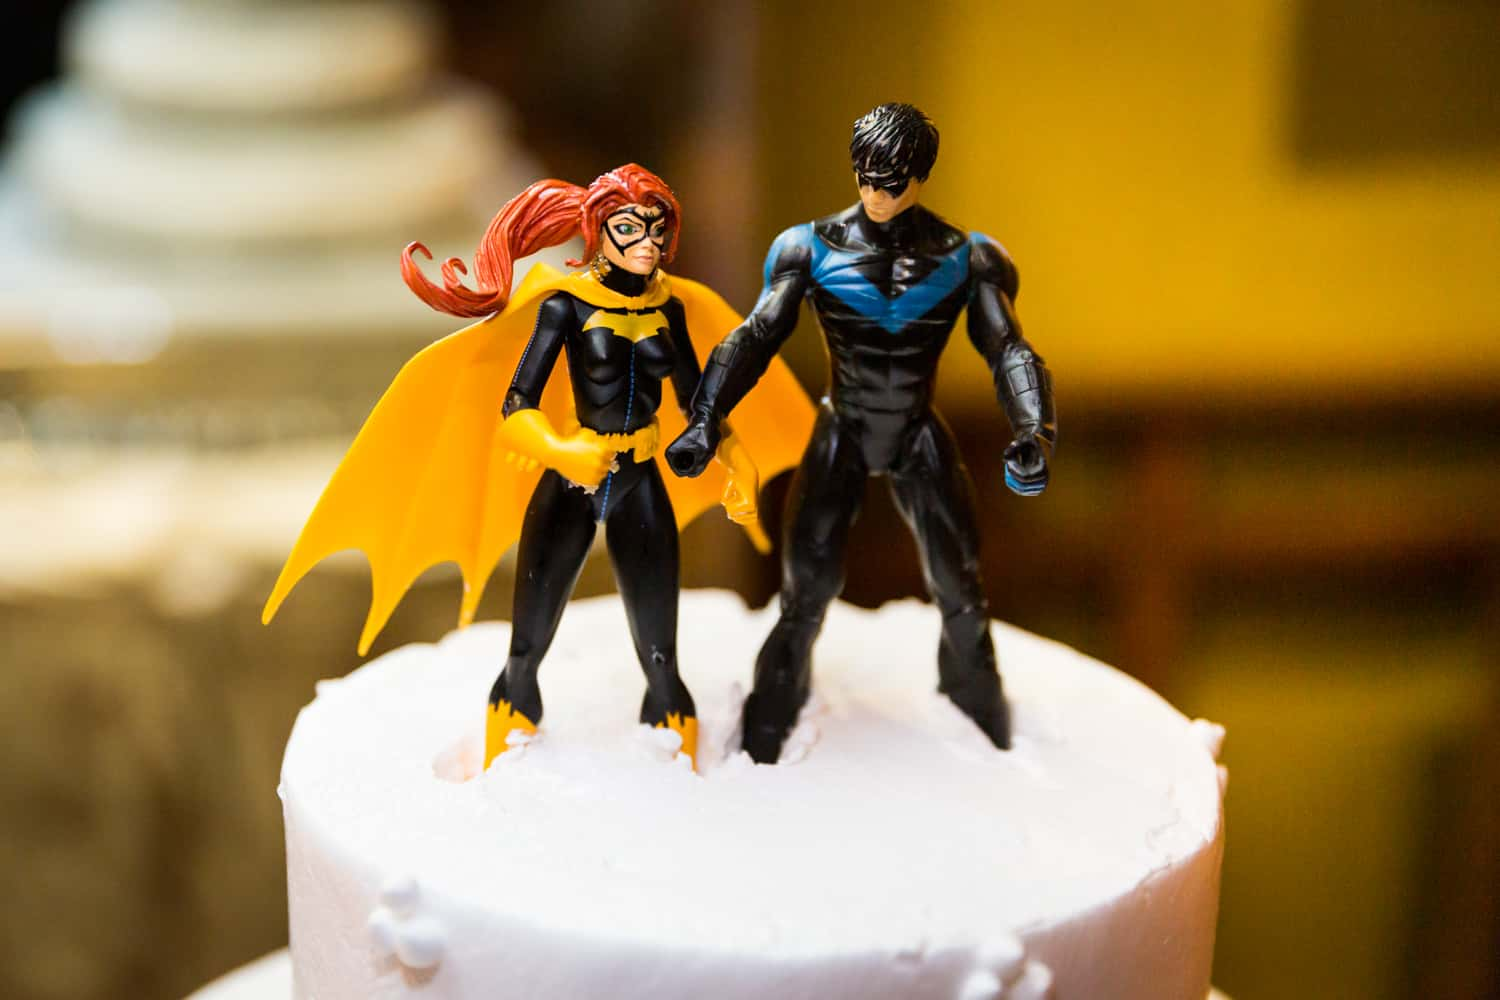 Batman and Robin wedding cake toppers